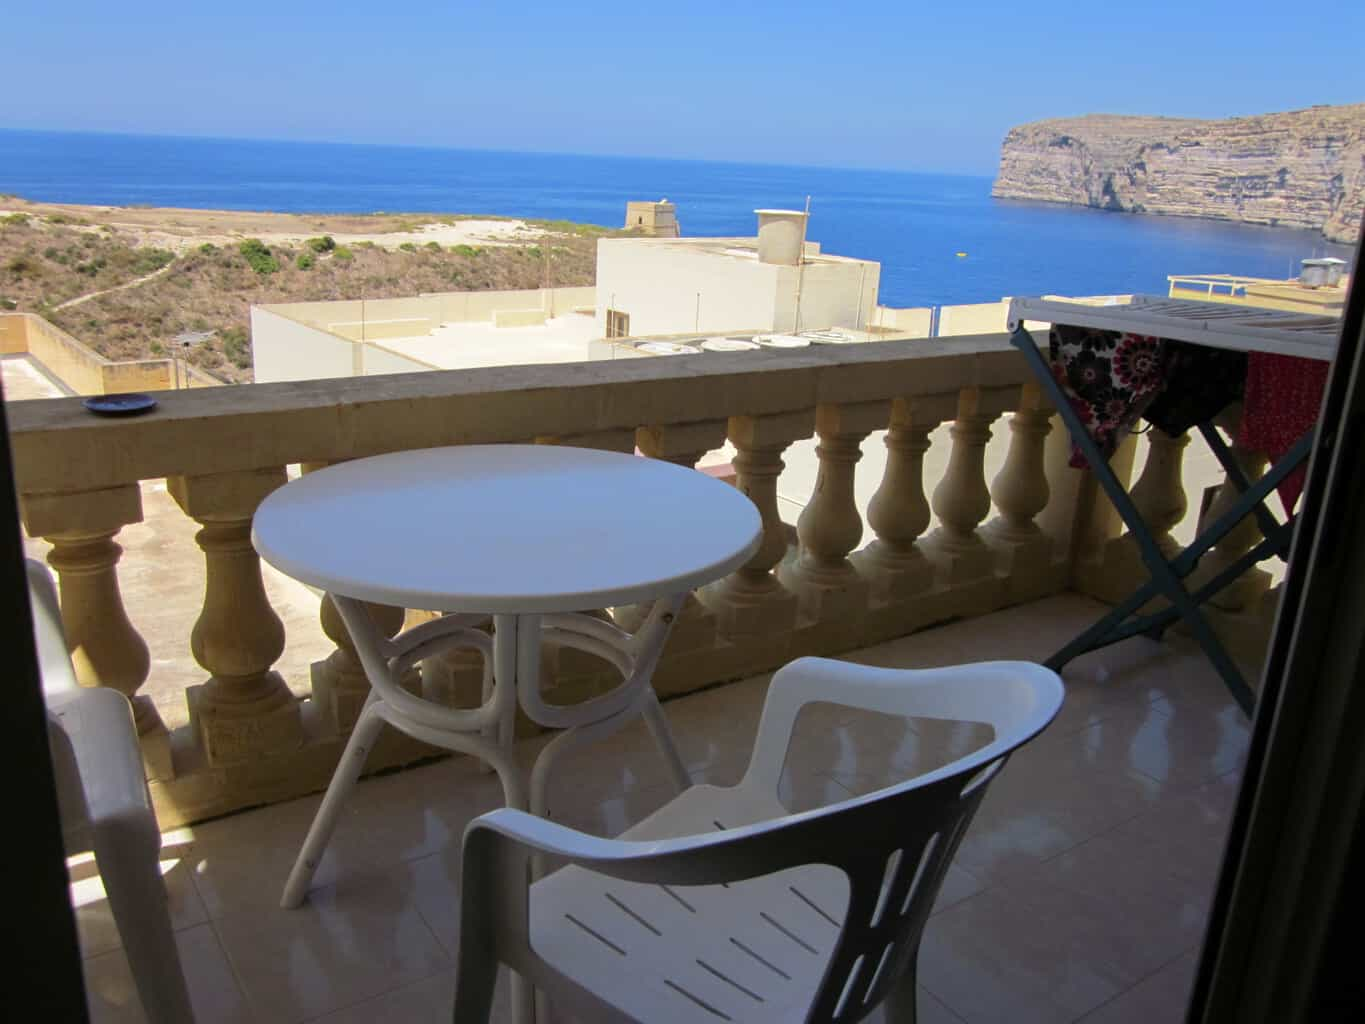 Malta and Gozo Diving holidays self catering balcony